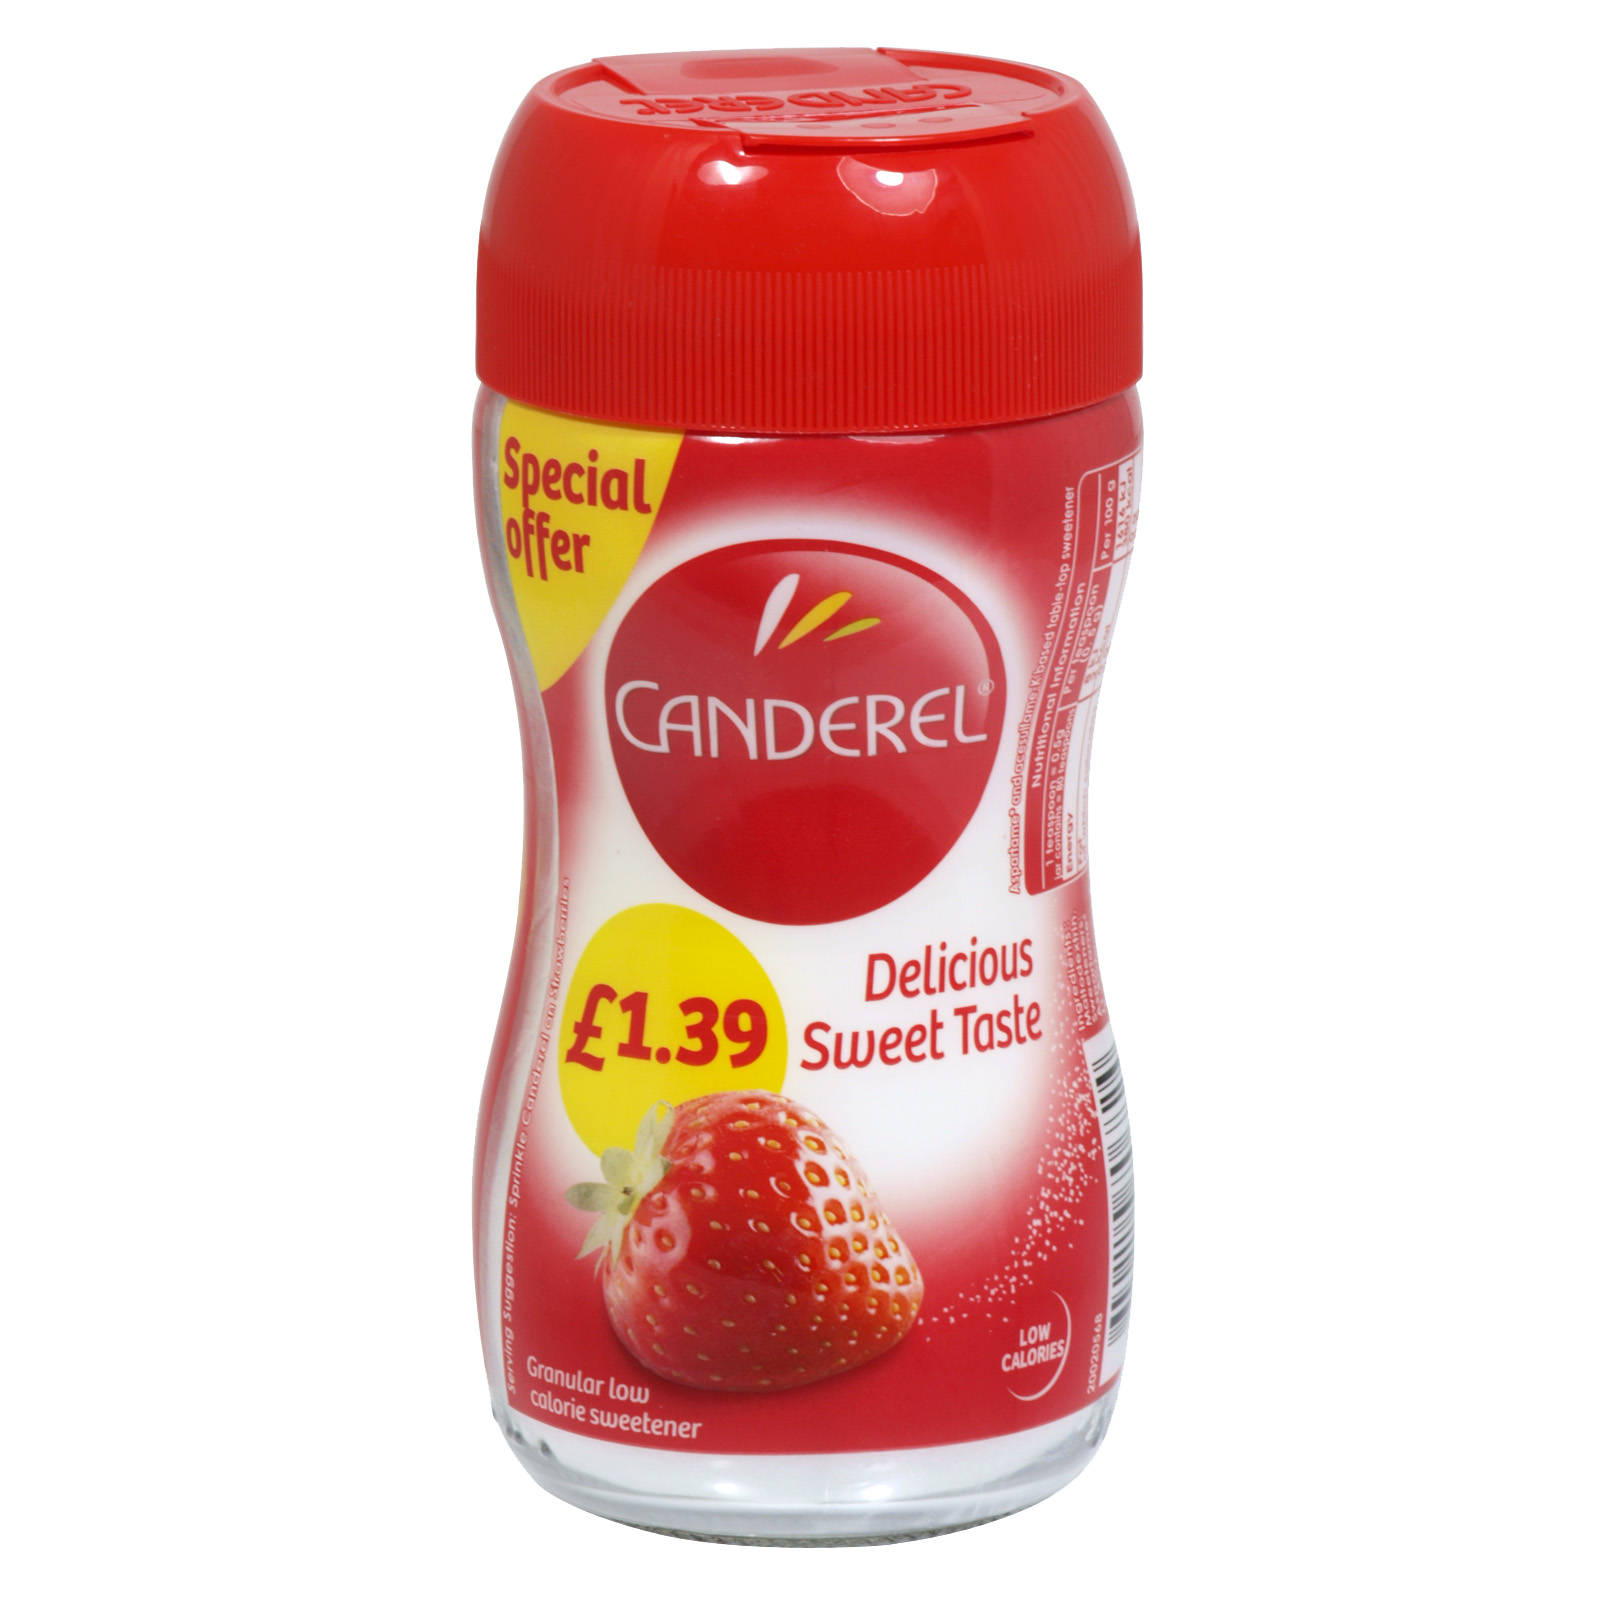 CANDEREL GRANULES 40GM PM £1.39 X6